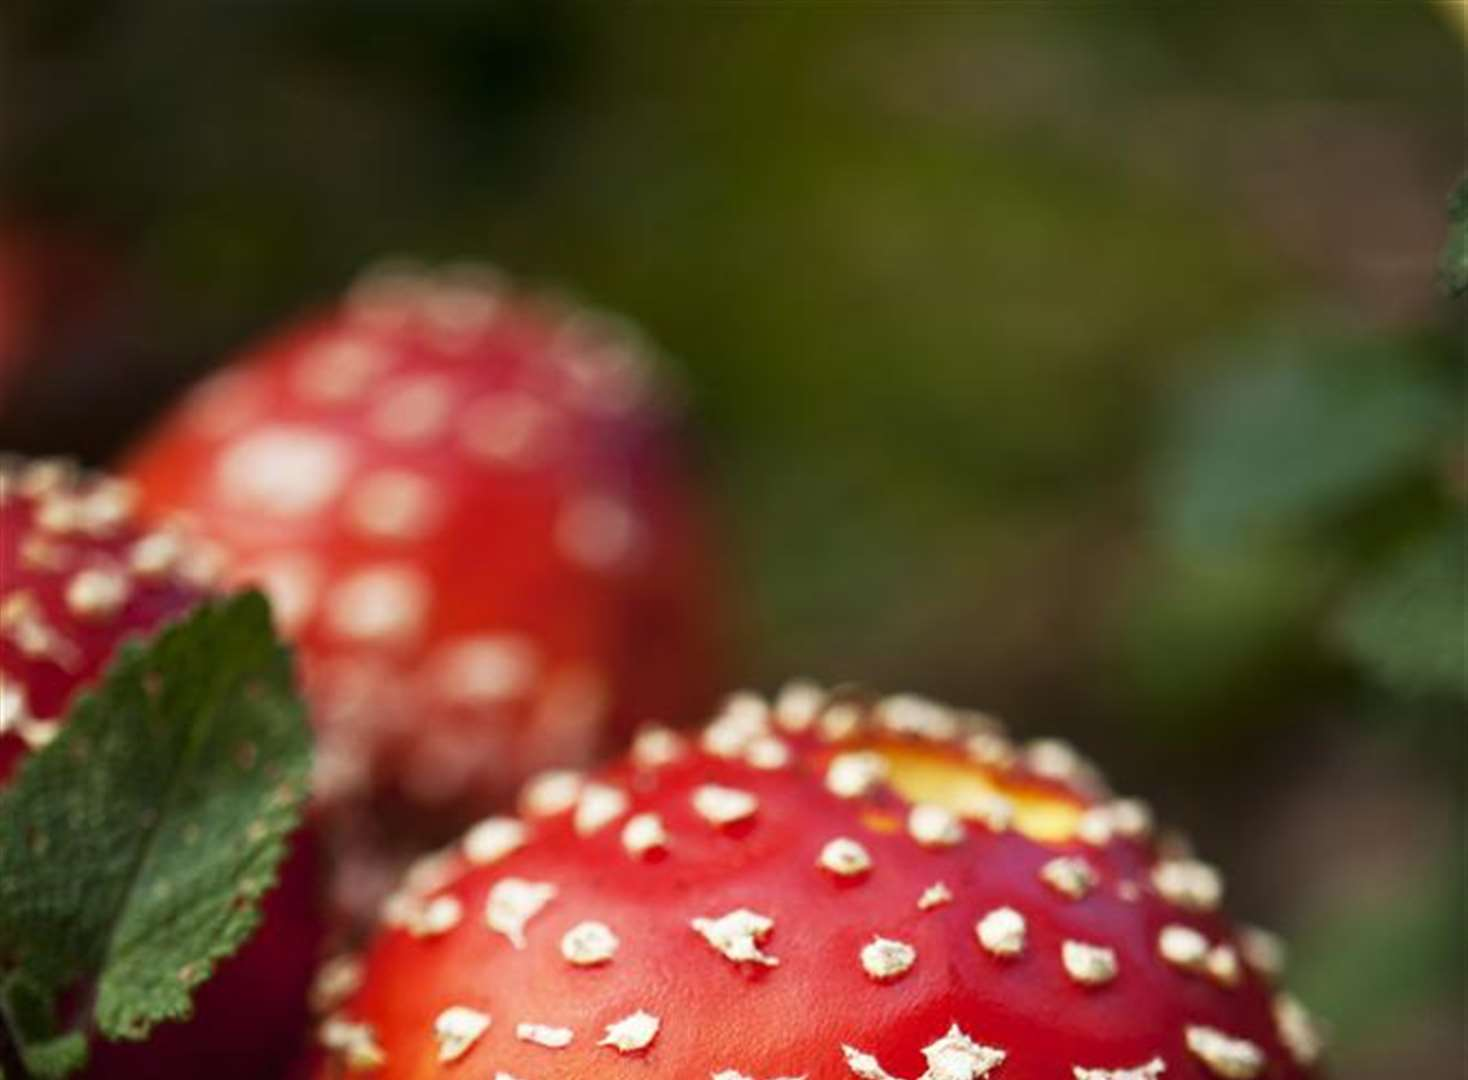 Get up close to the autumn funghi